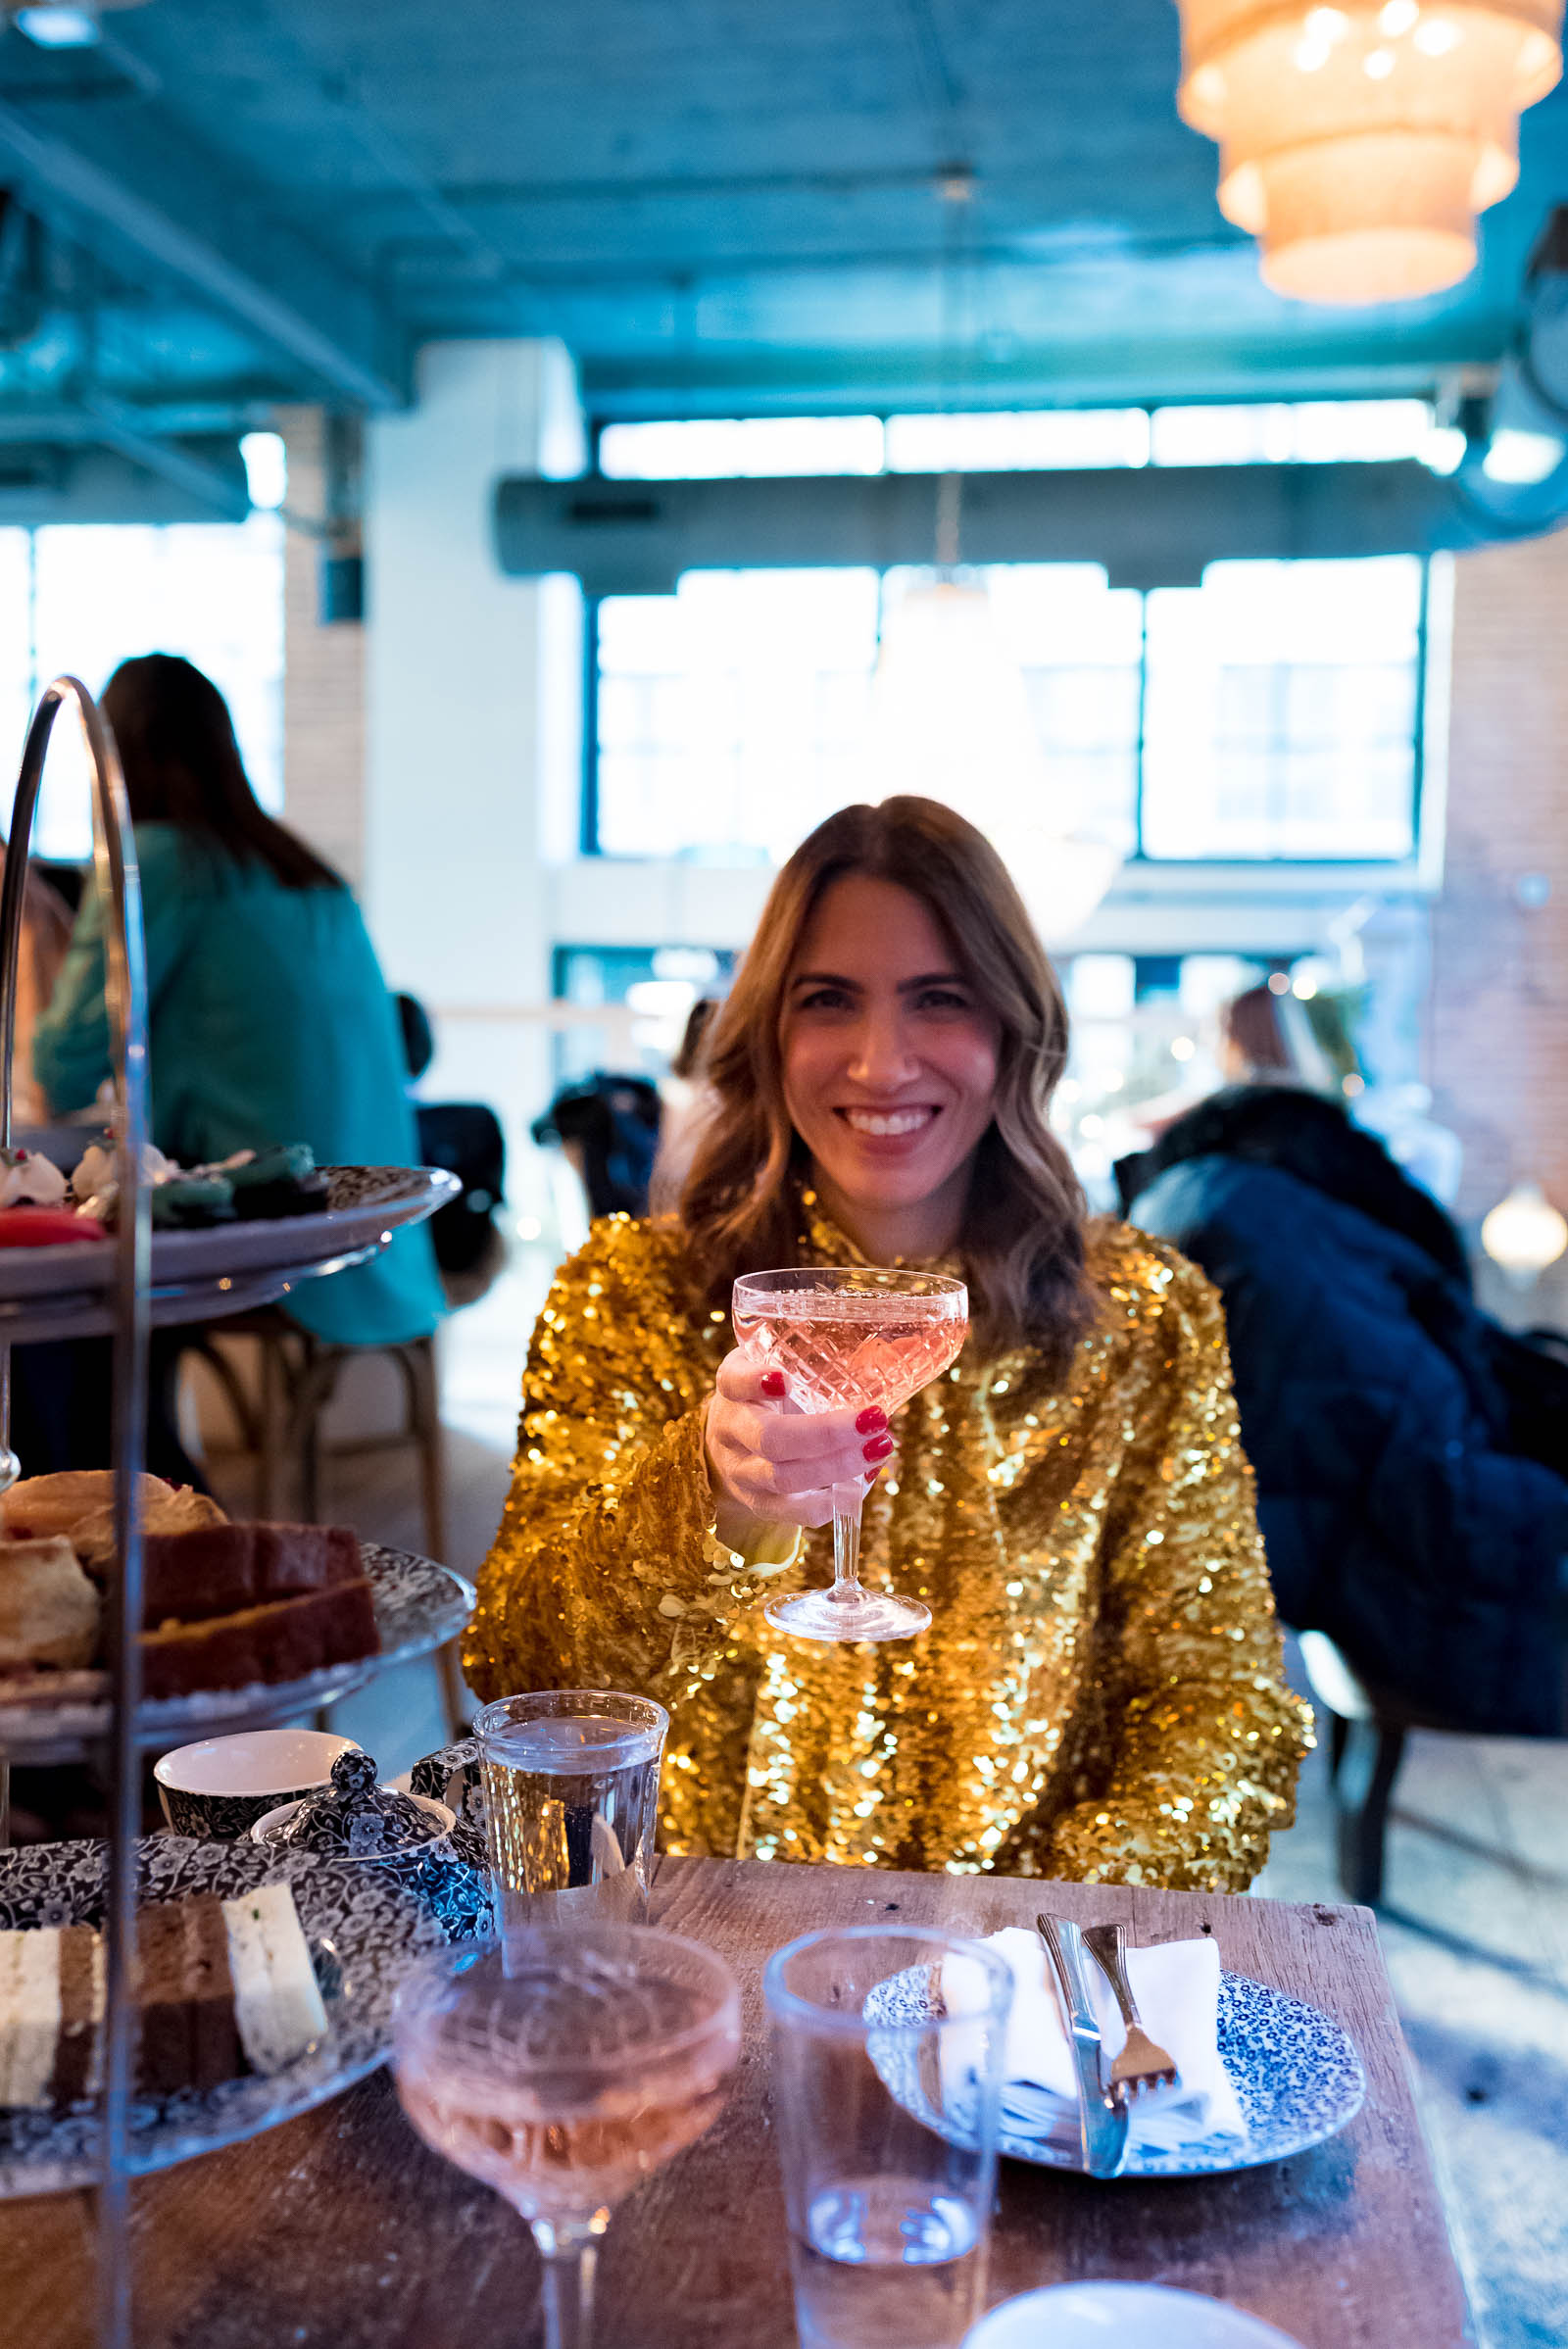 Anna Roufos Sosa of Noir Friday having the holiday afternoon tae at Soho House Chicago in a MSGM top.